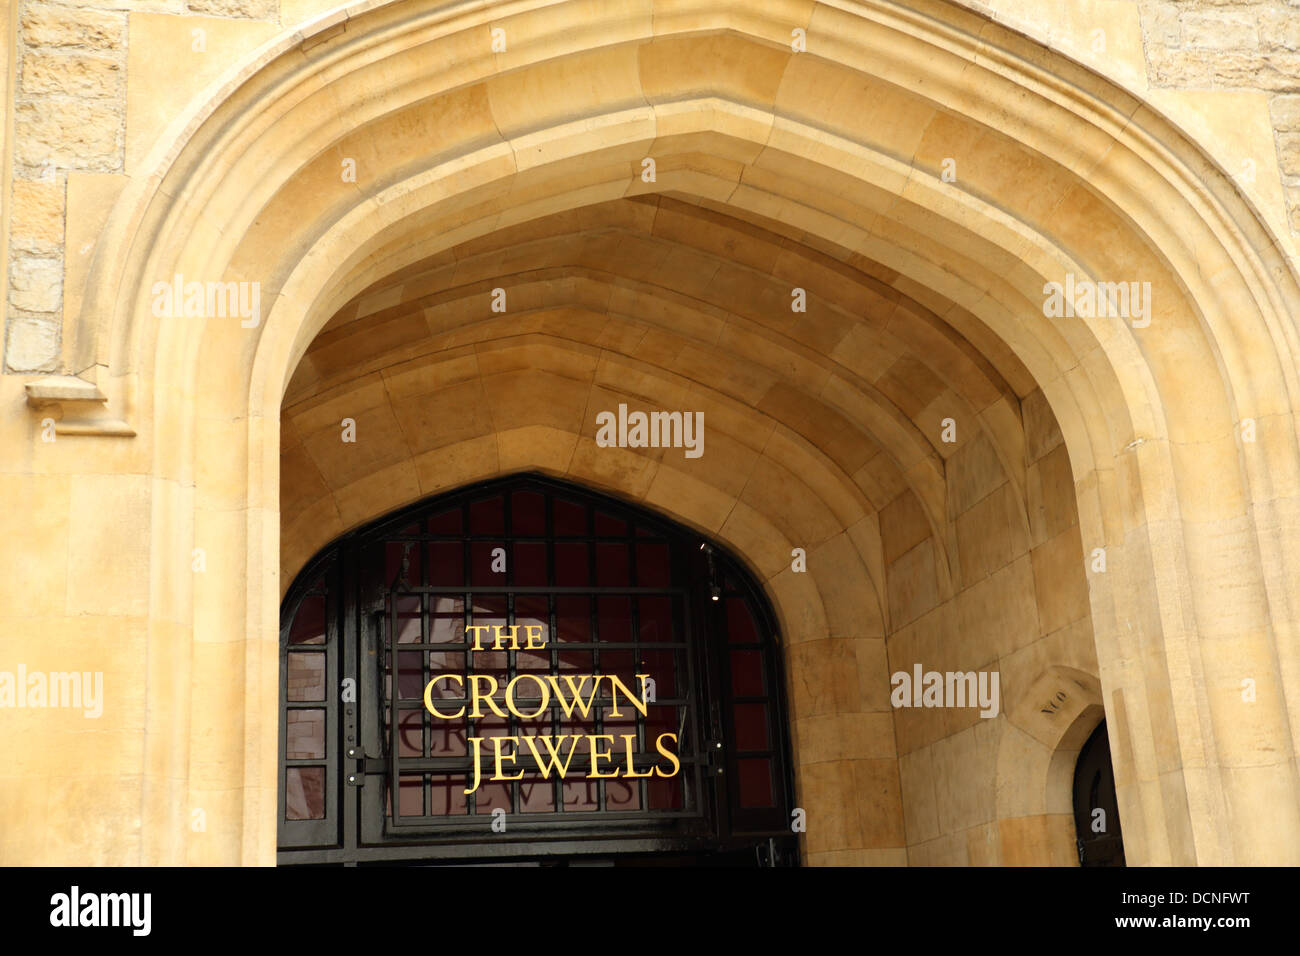 Entrance to the Jewel House at the Tower of London where the Crown Jewels are on display, London England UK Stock Photo